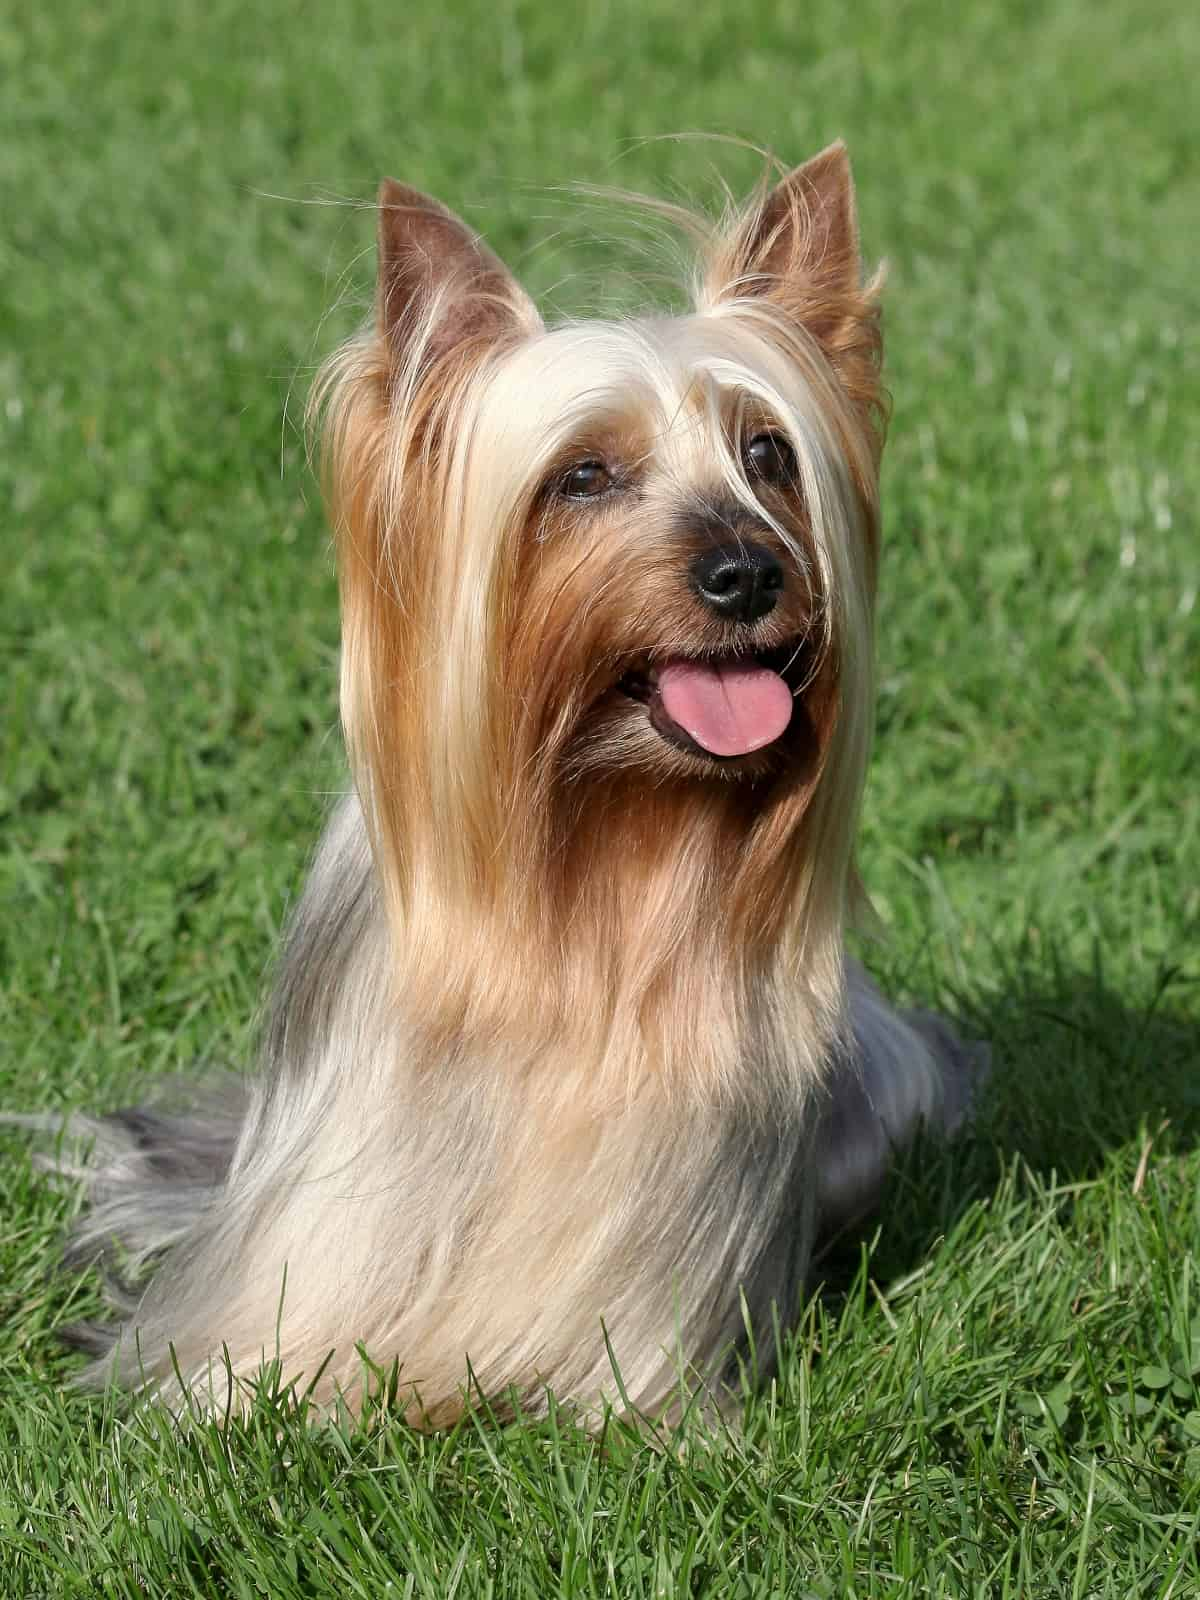 Australian Silky Terrier on the grass